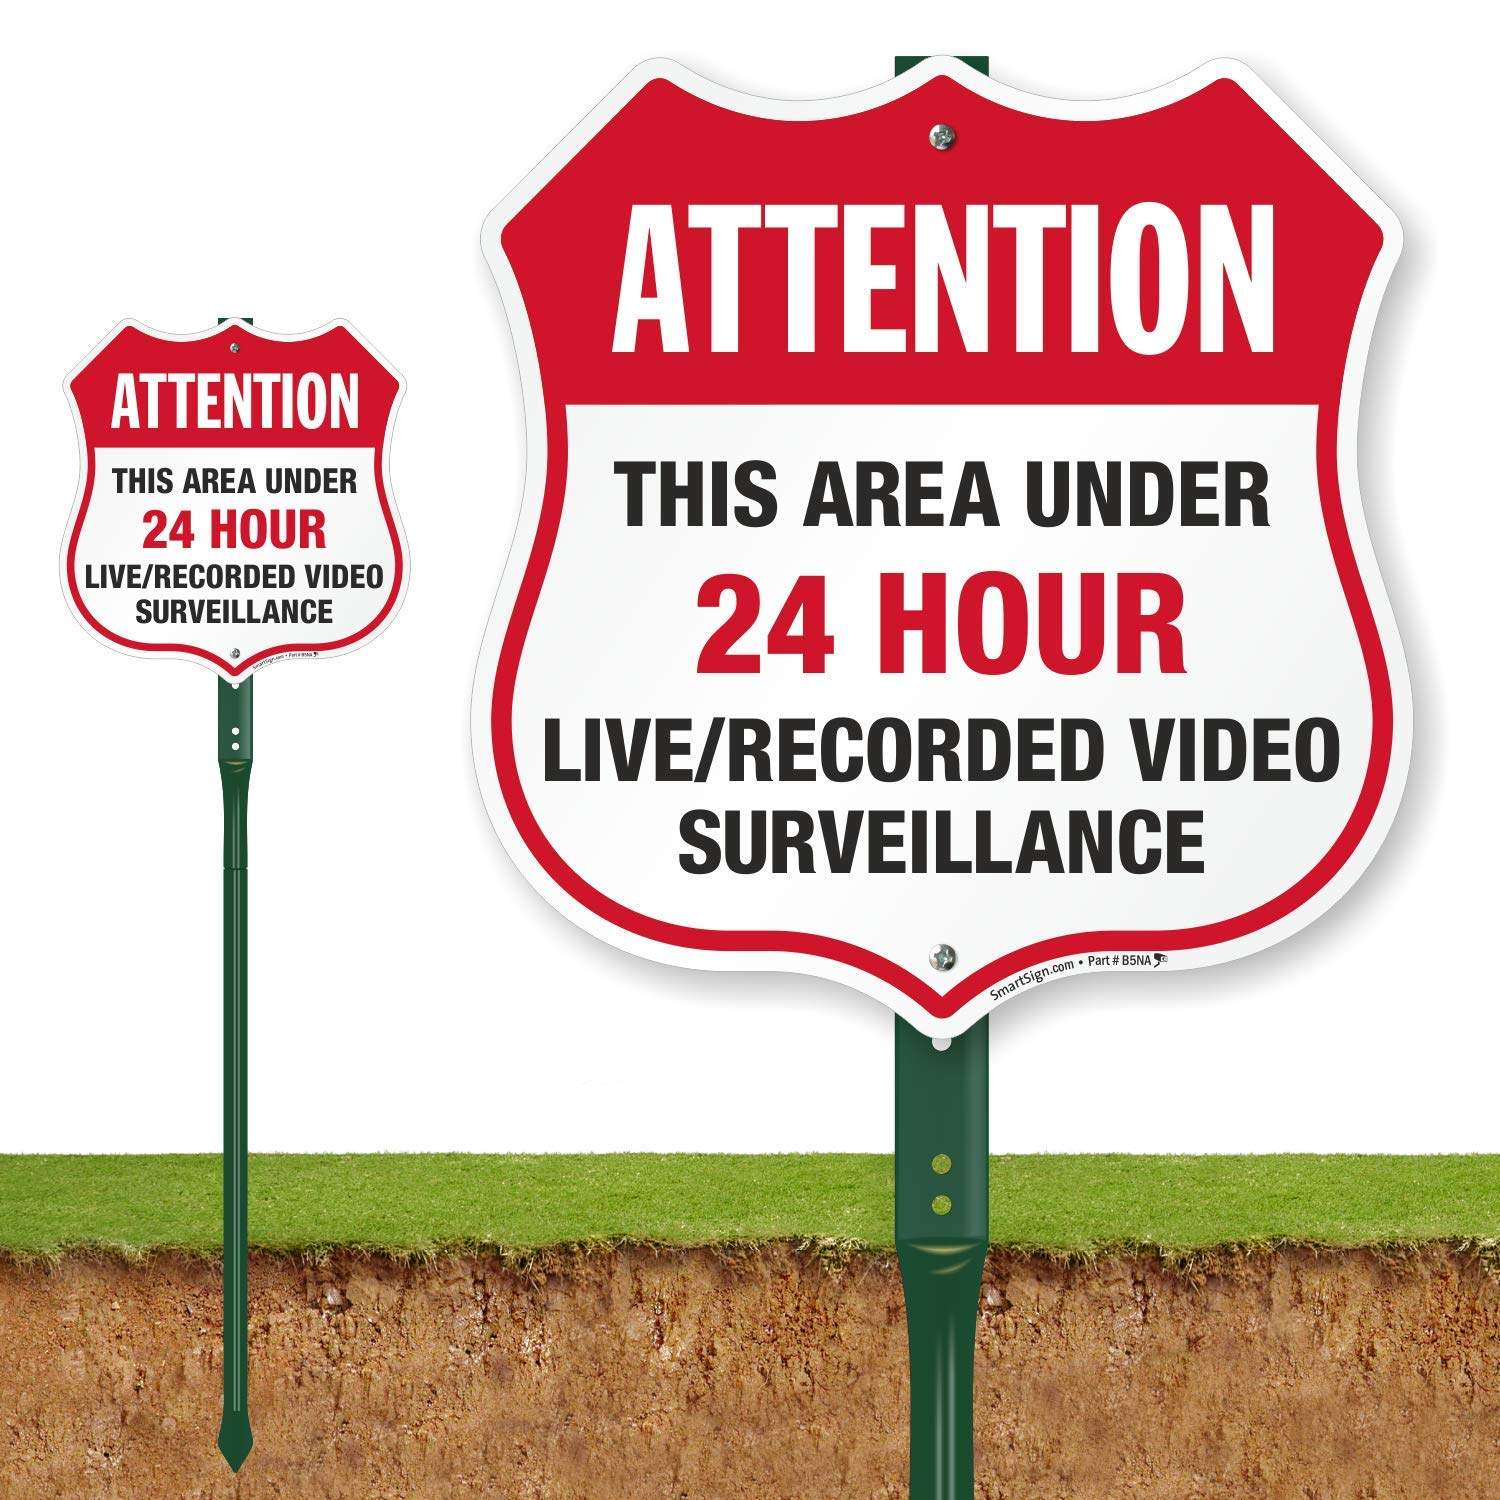 SmartSign''Attention - This Area Under 24 Hour Live/Recorded Video Surveillance'' Shield Sign | 12'' x 11.5'' Aluminum Sign with 3' Tall Stake by SmartSign